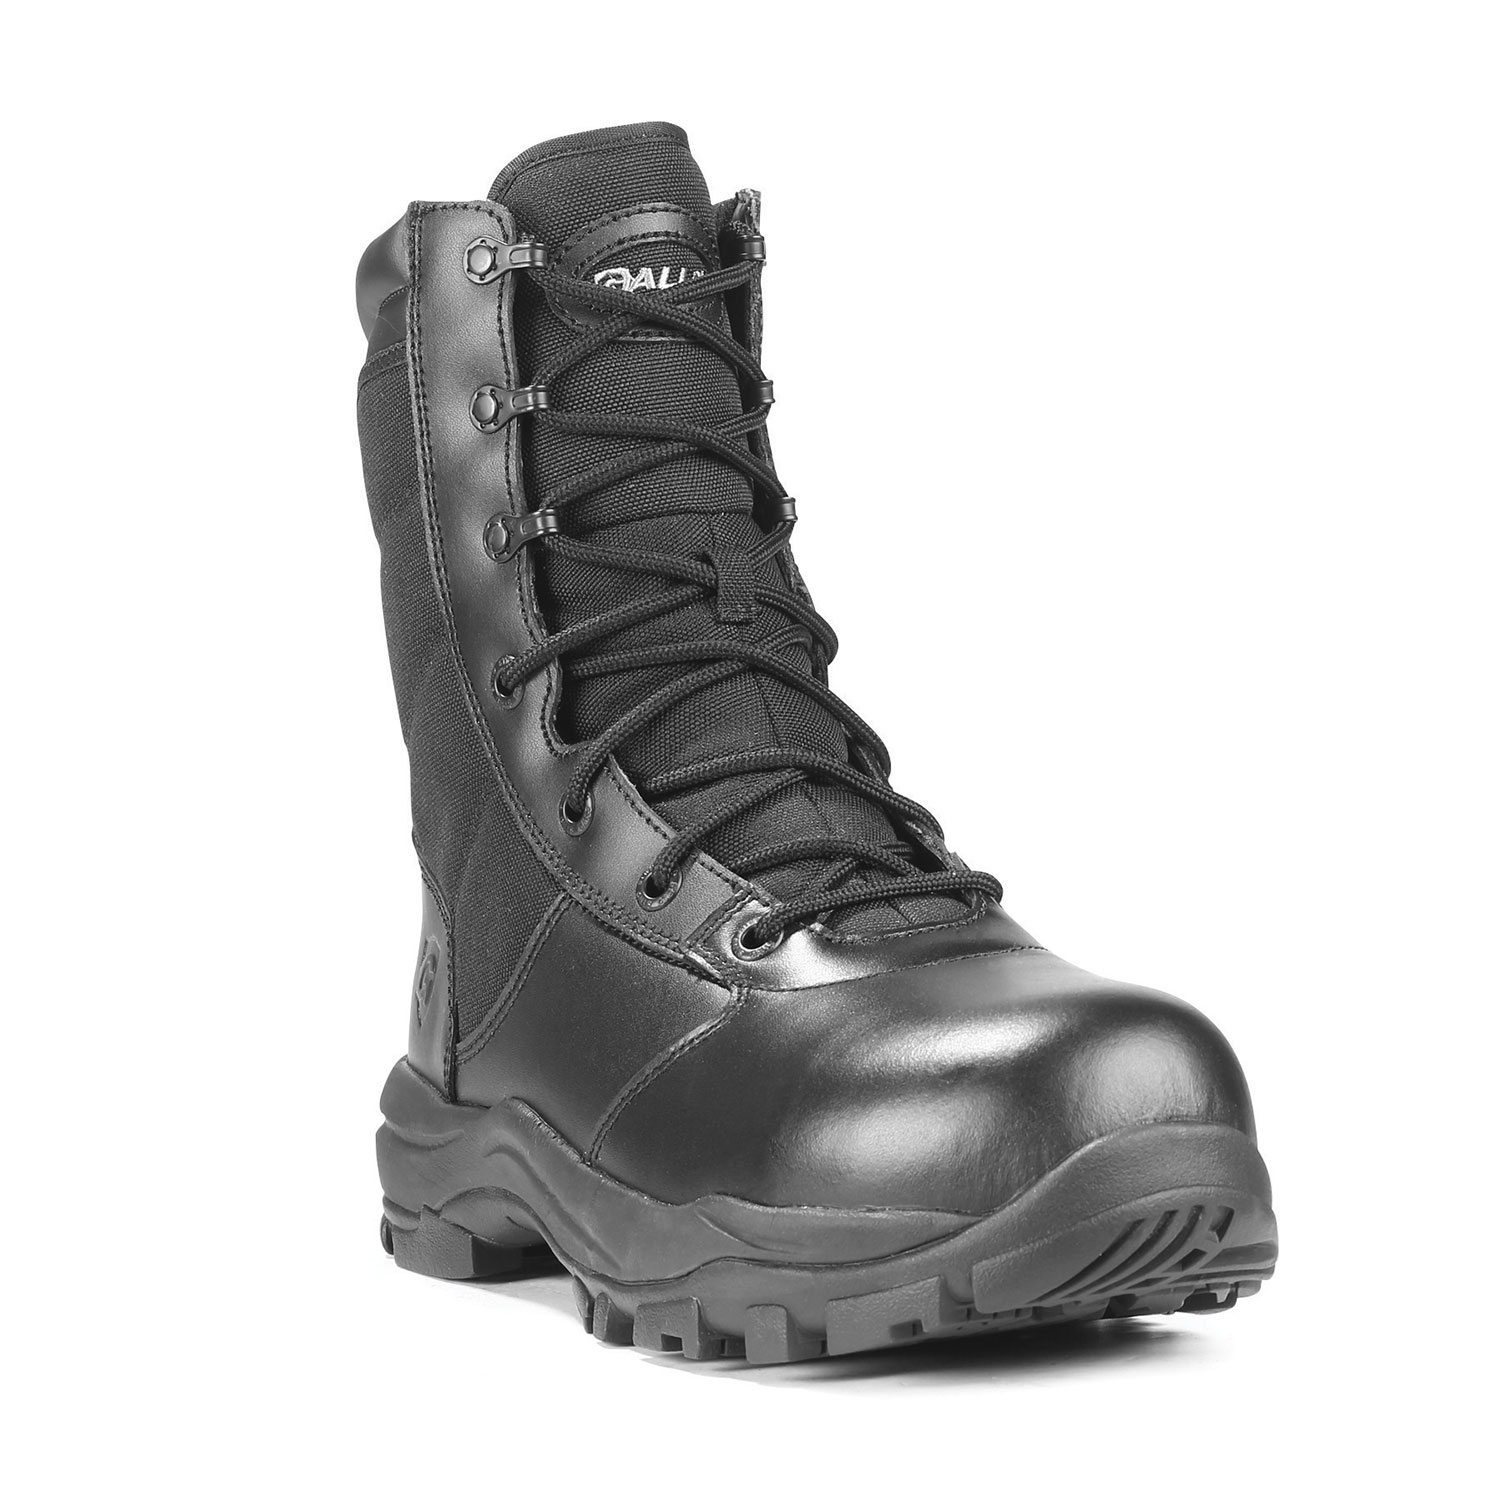 "Galls 8"" Composite Toe Duty Boot"